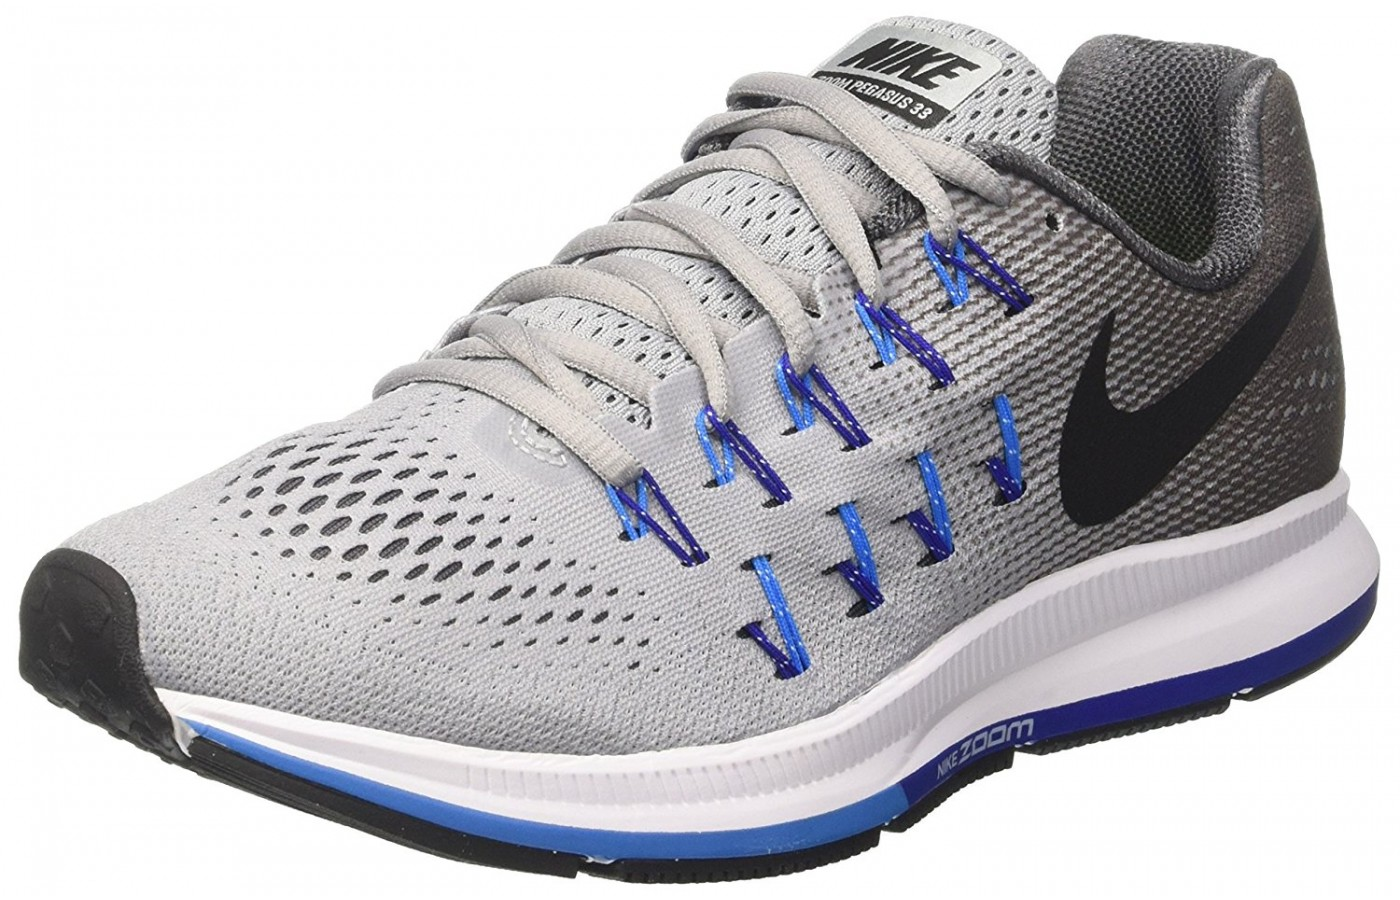 a36eb14234845 Three quarter view of the Nike Air Zoom Pegasus 33 running shoe ...